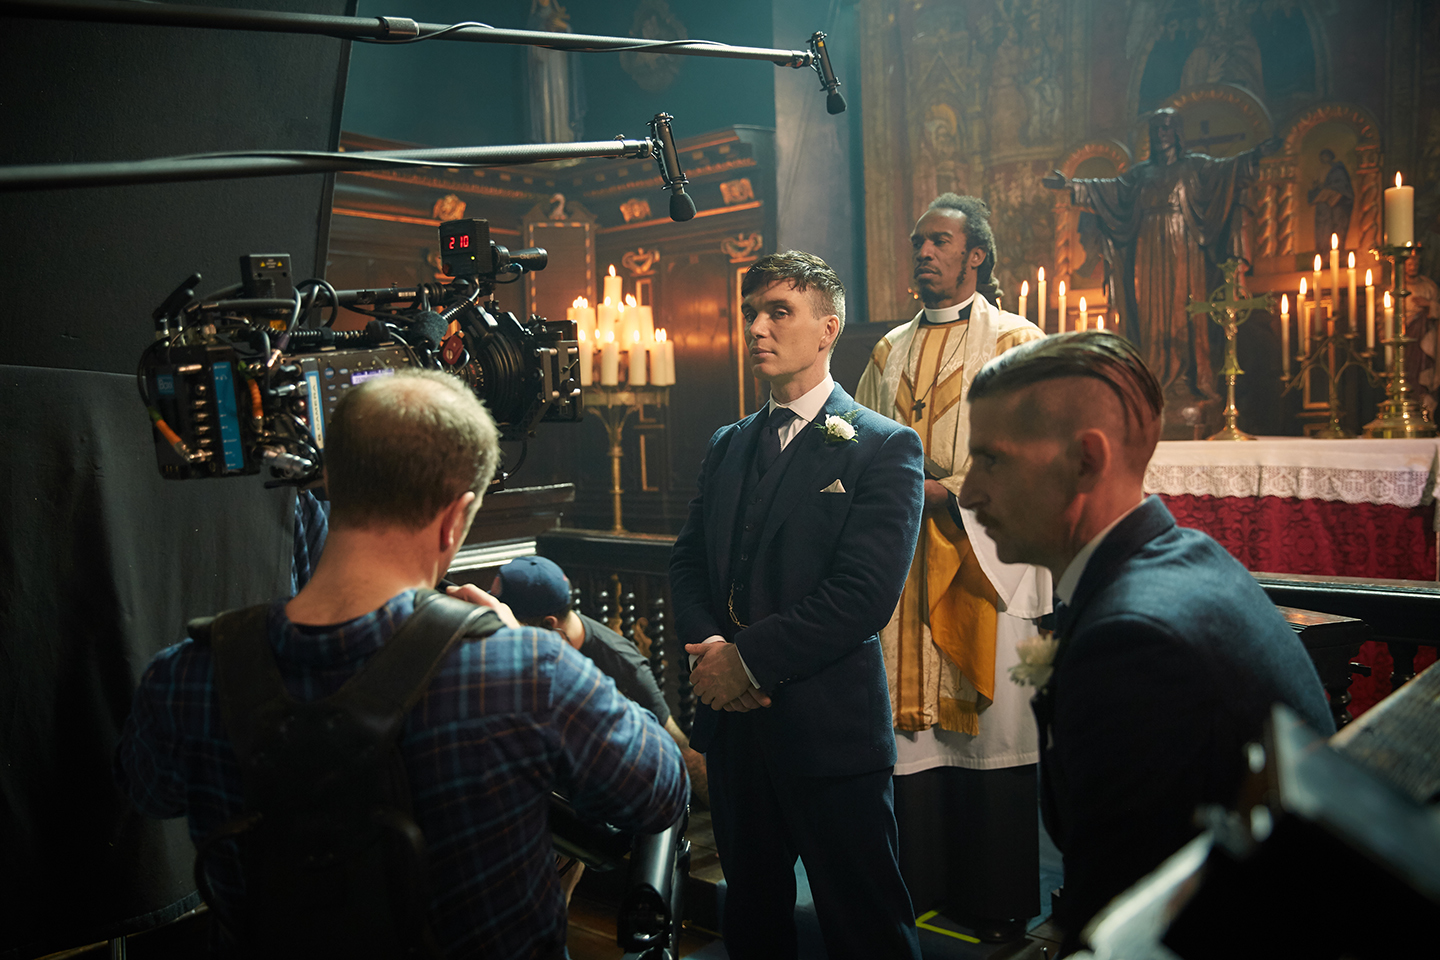 A Steadicam is employed for Tommy's wedding scene.